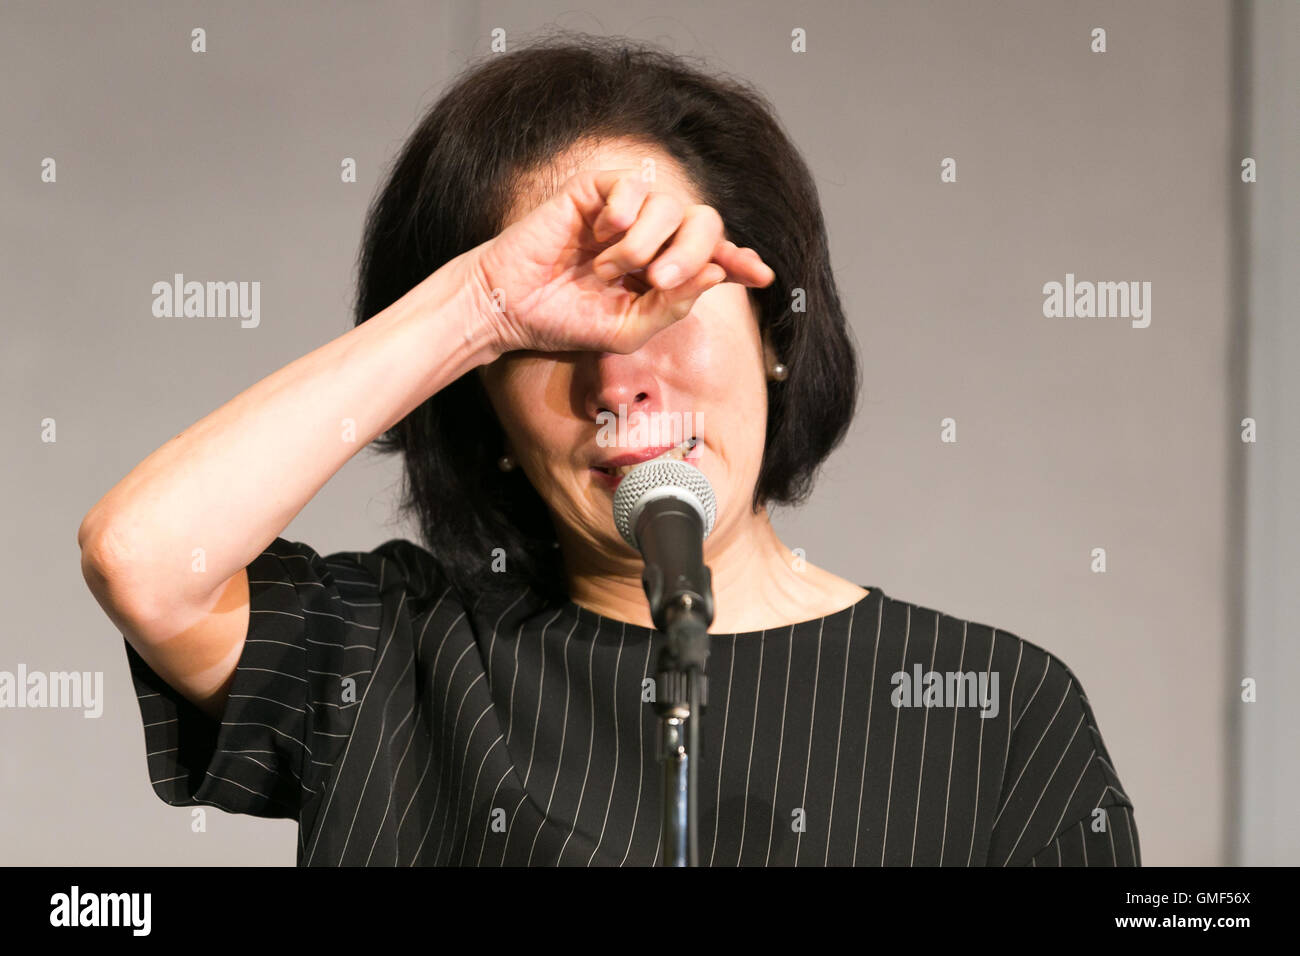 Actress Atsuko Takahata Mother Of Actor Yuta Cries During A Press Conference On August 26 2016 Tokyo 61 Year Old Single